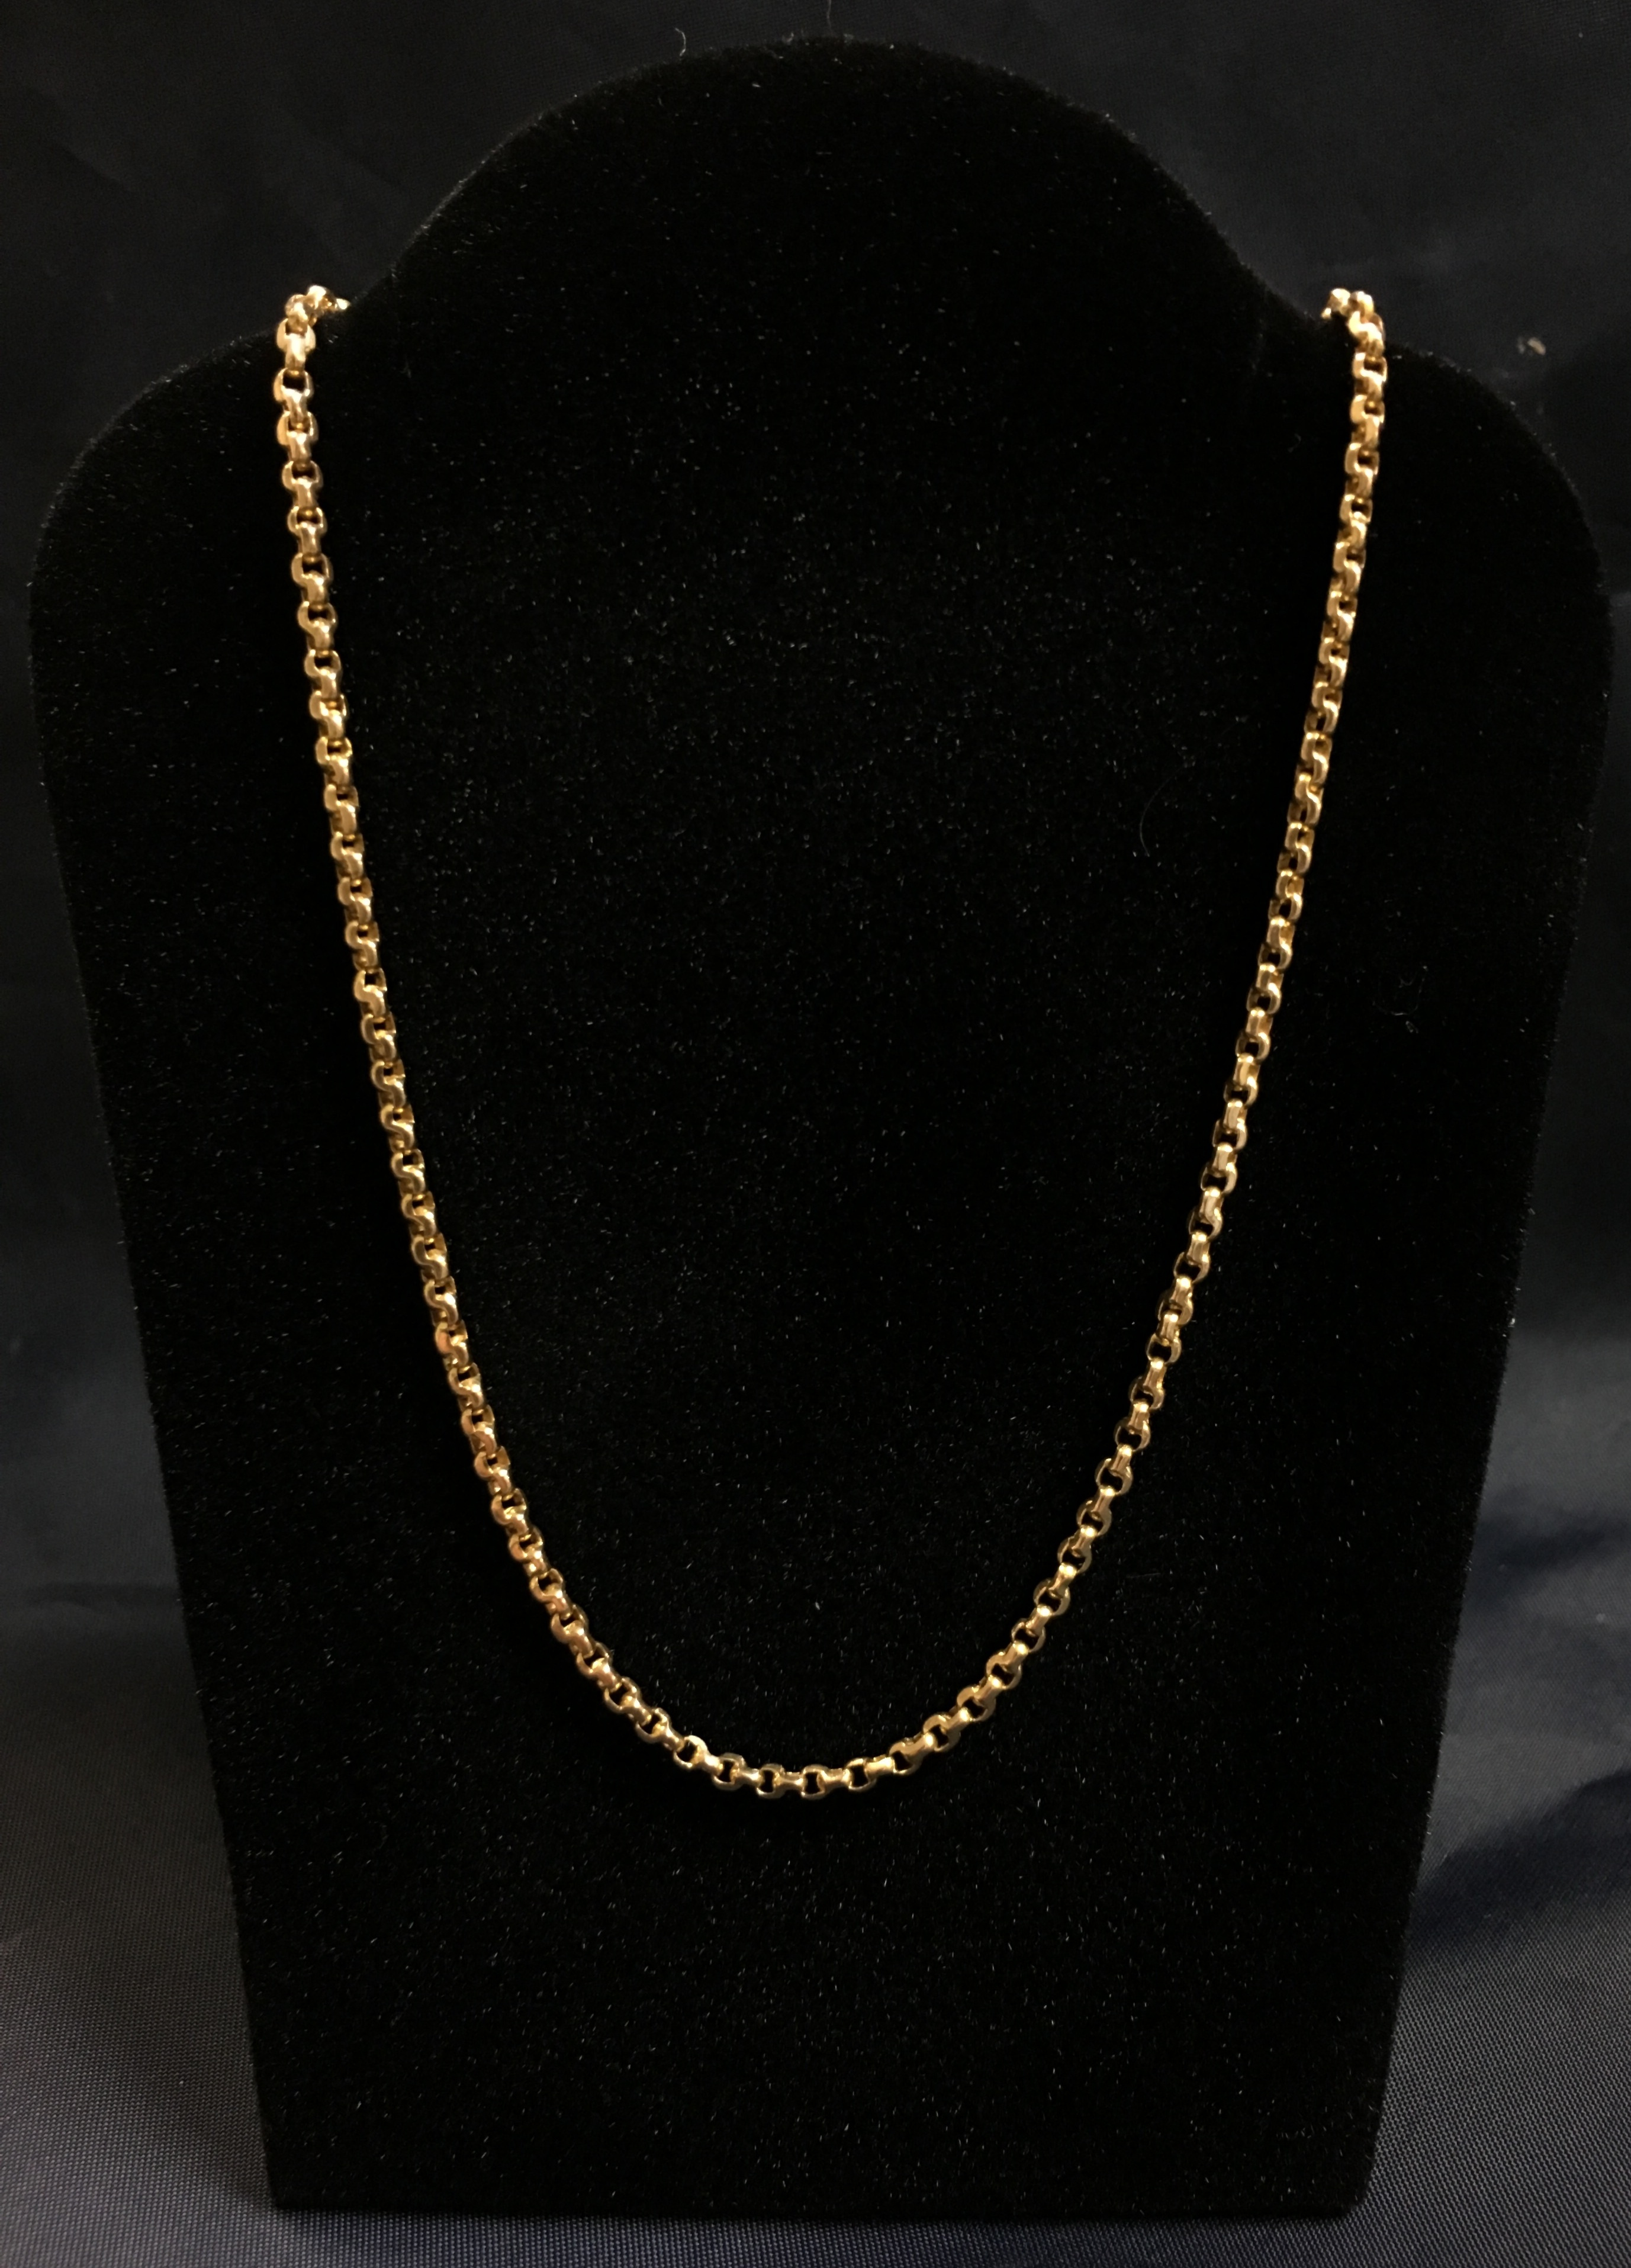 22KT YELLOW GOLD ROLO BOX CHAIN 28